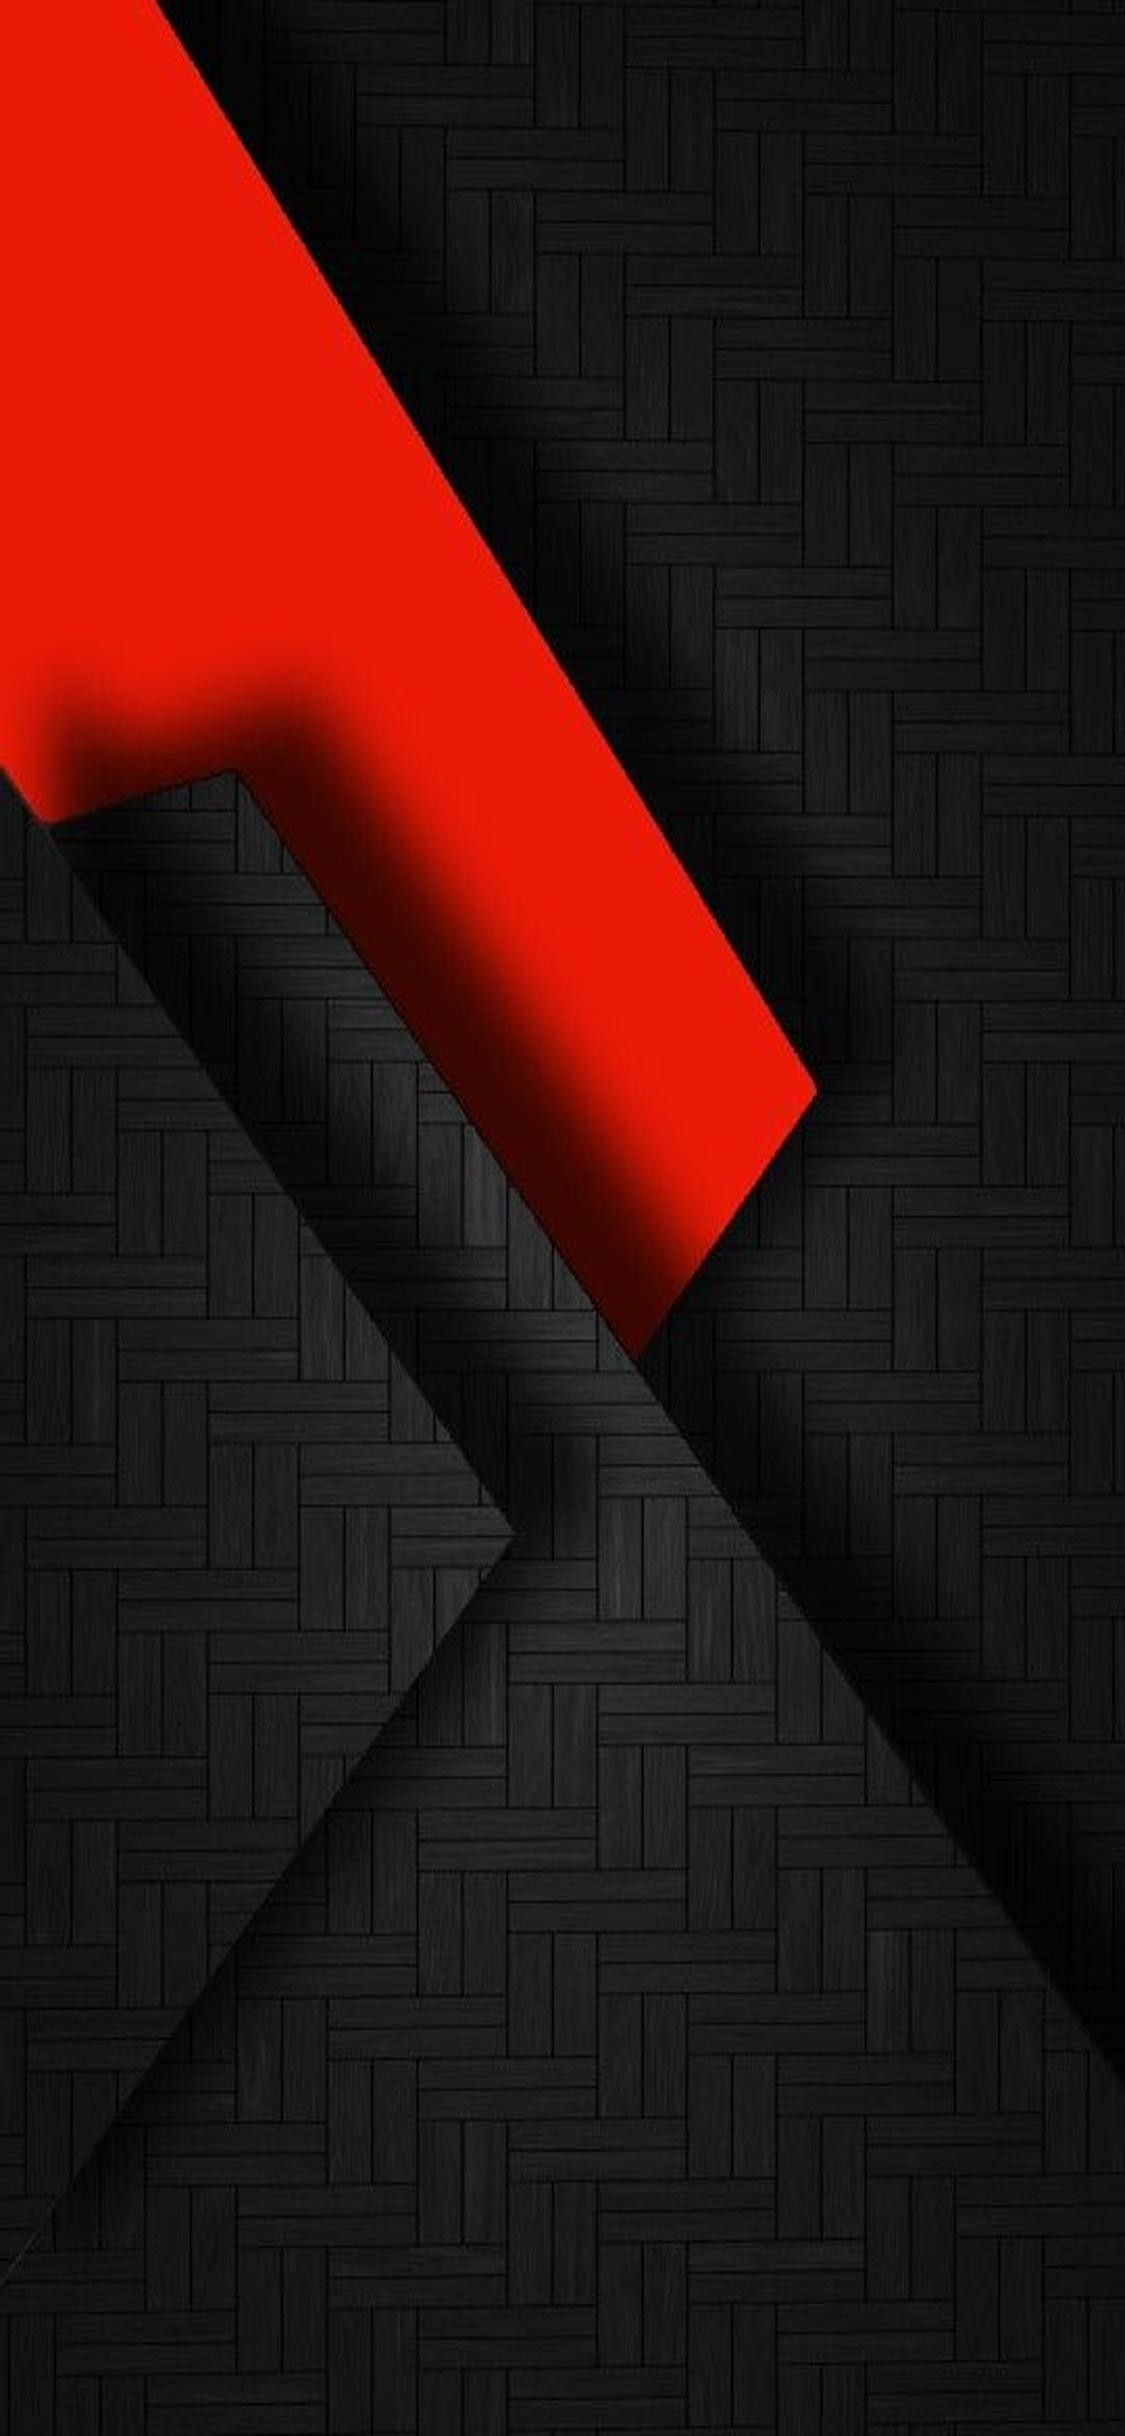 Red And Black Iphone Wallpapers On Wallpaperdog